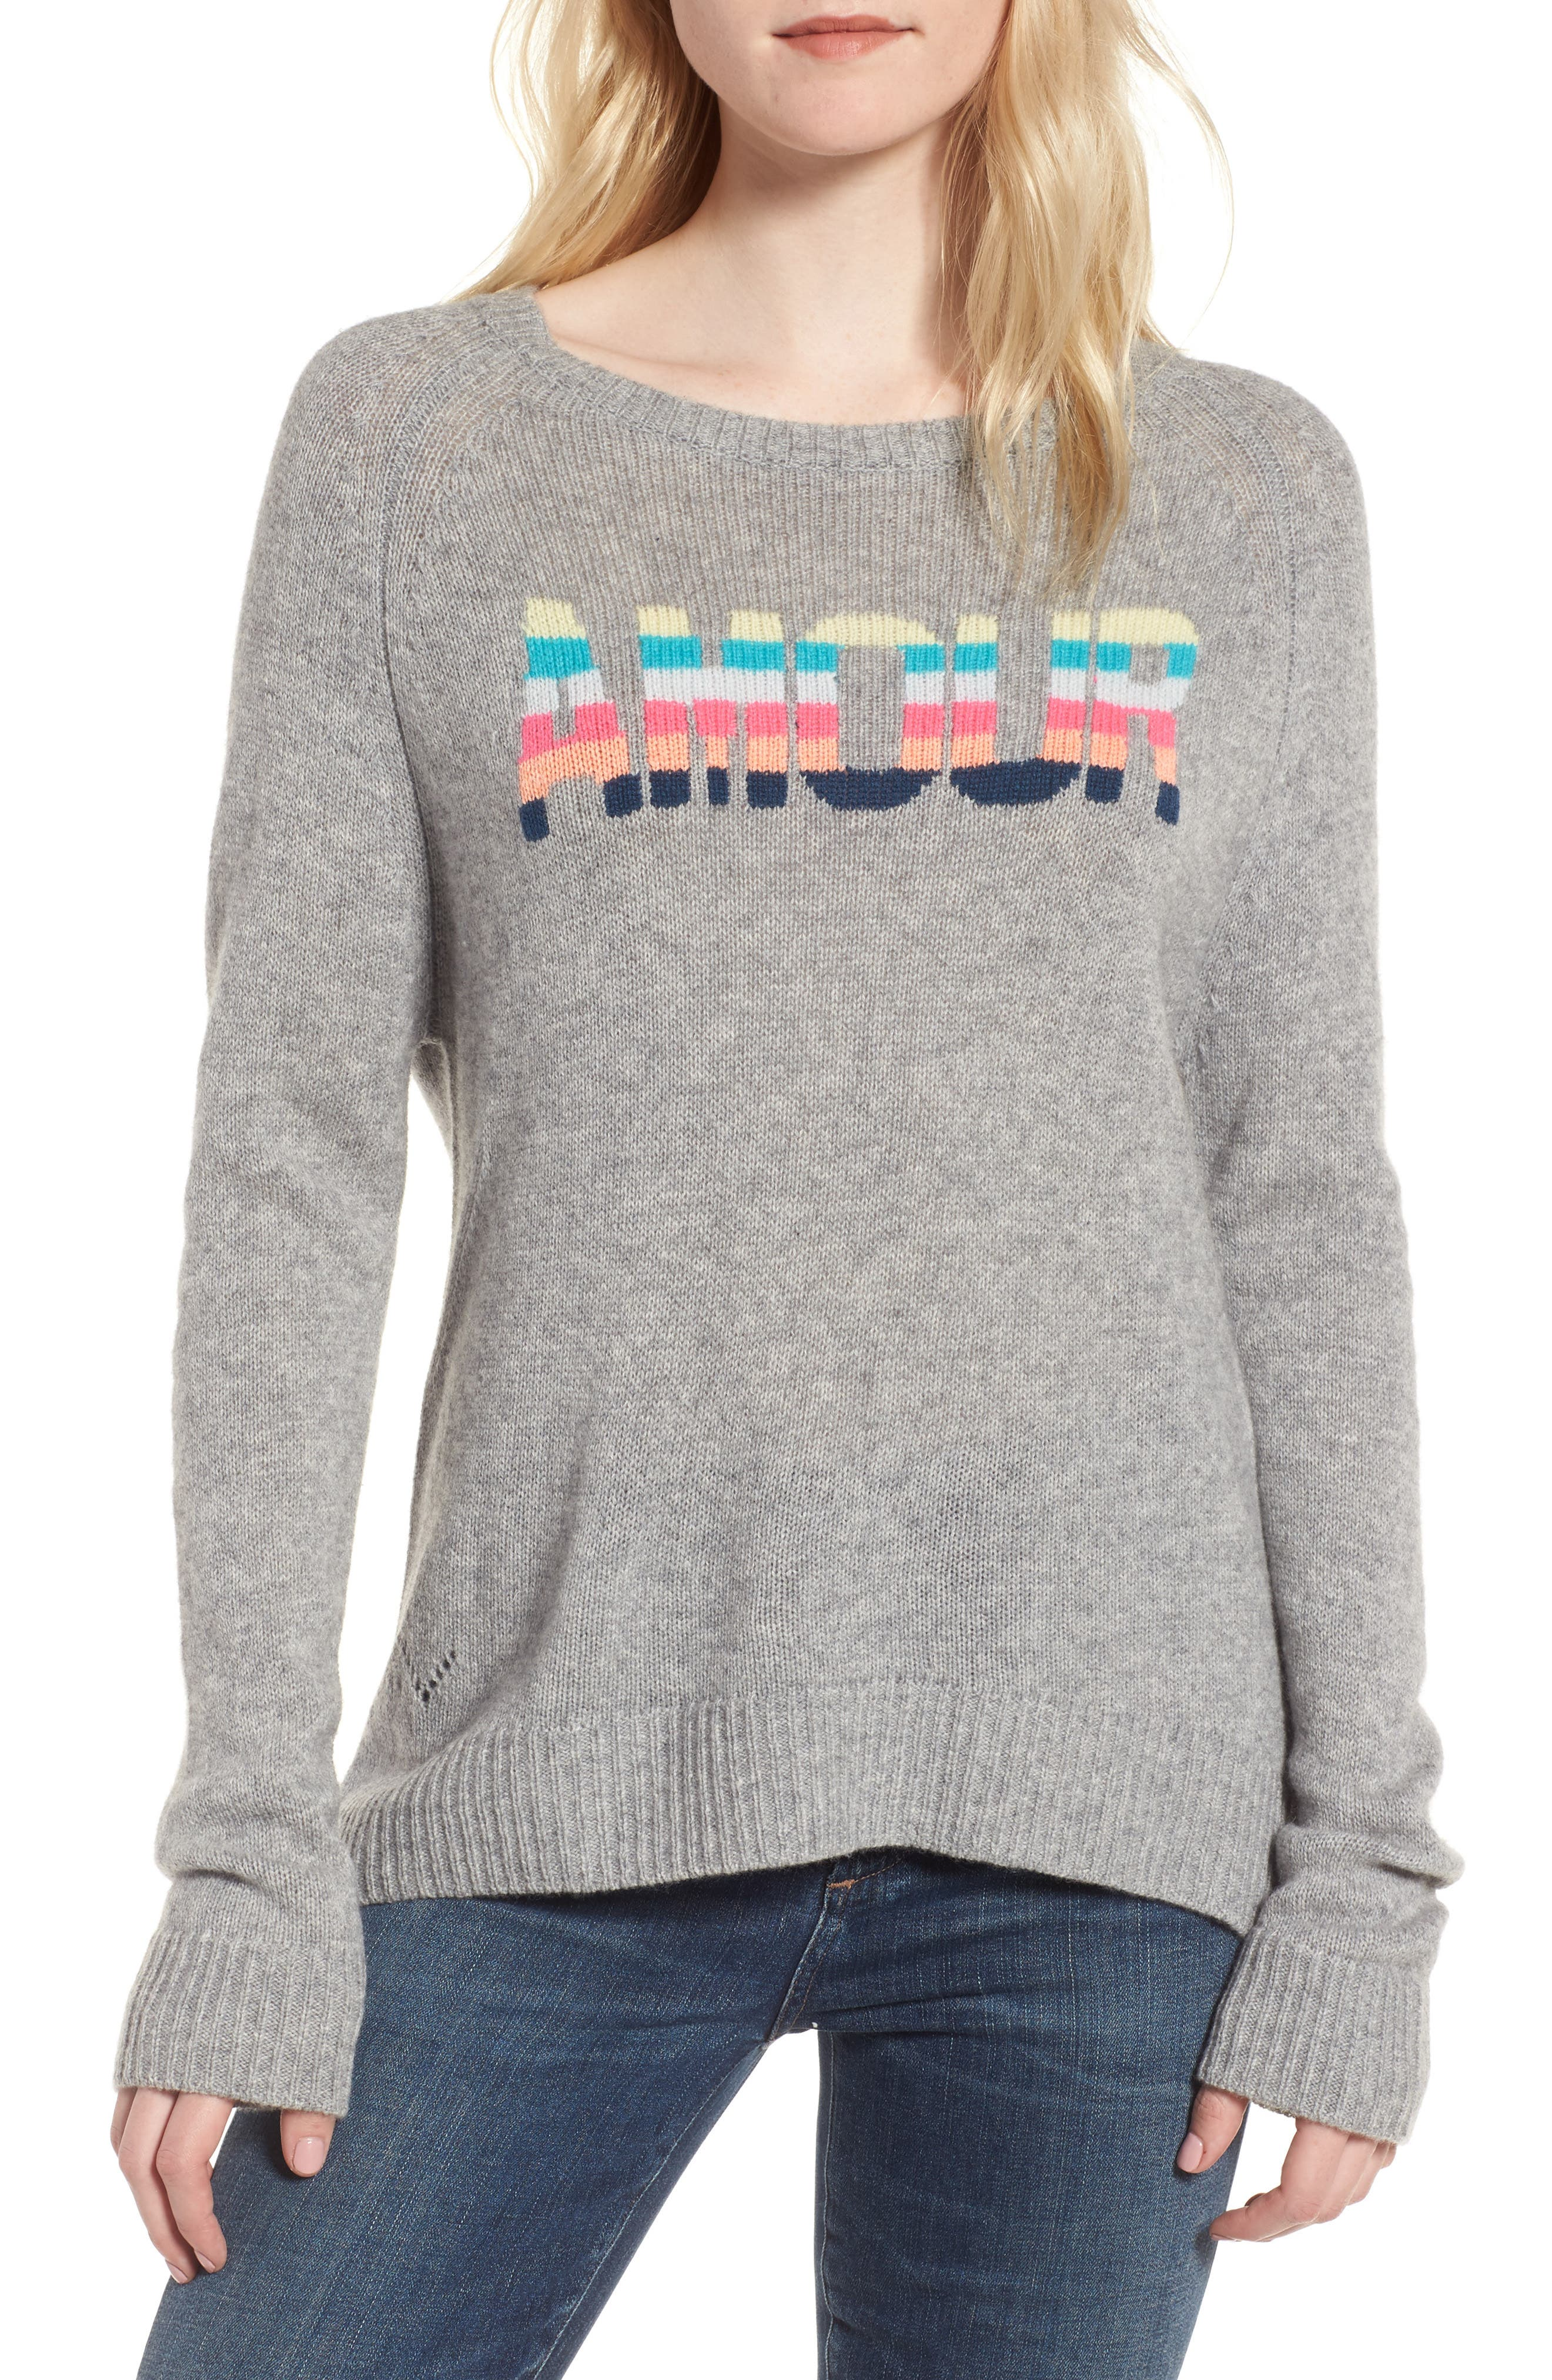 Baly Bis Cashmere Sweater,                         Main,                         color,